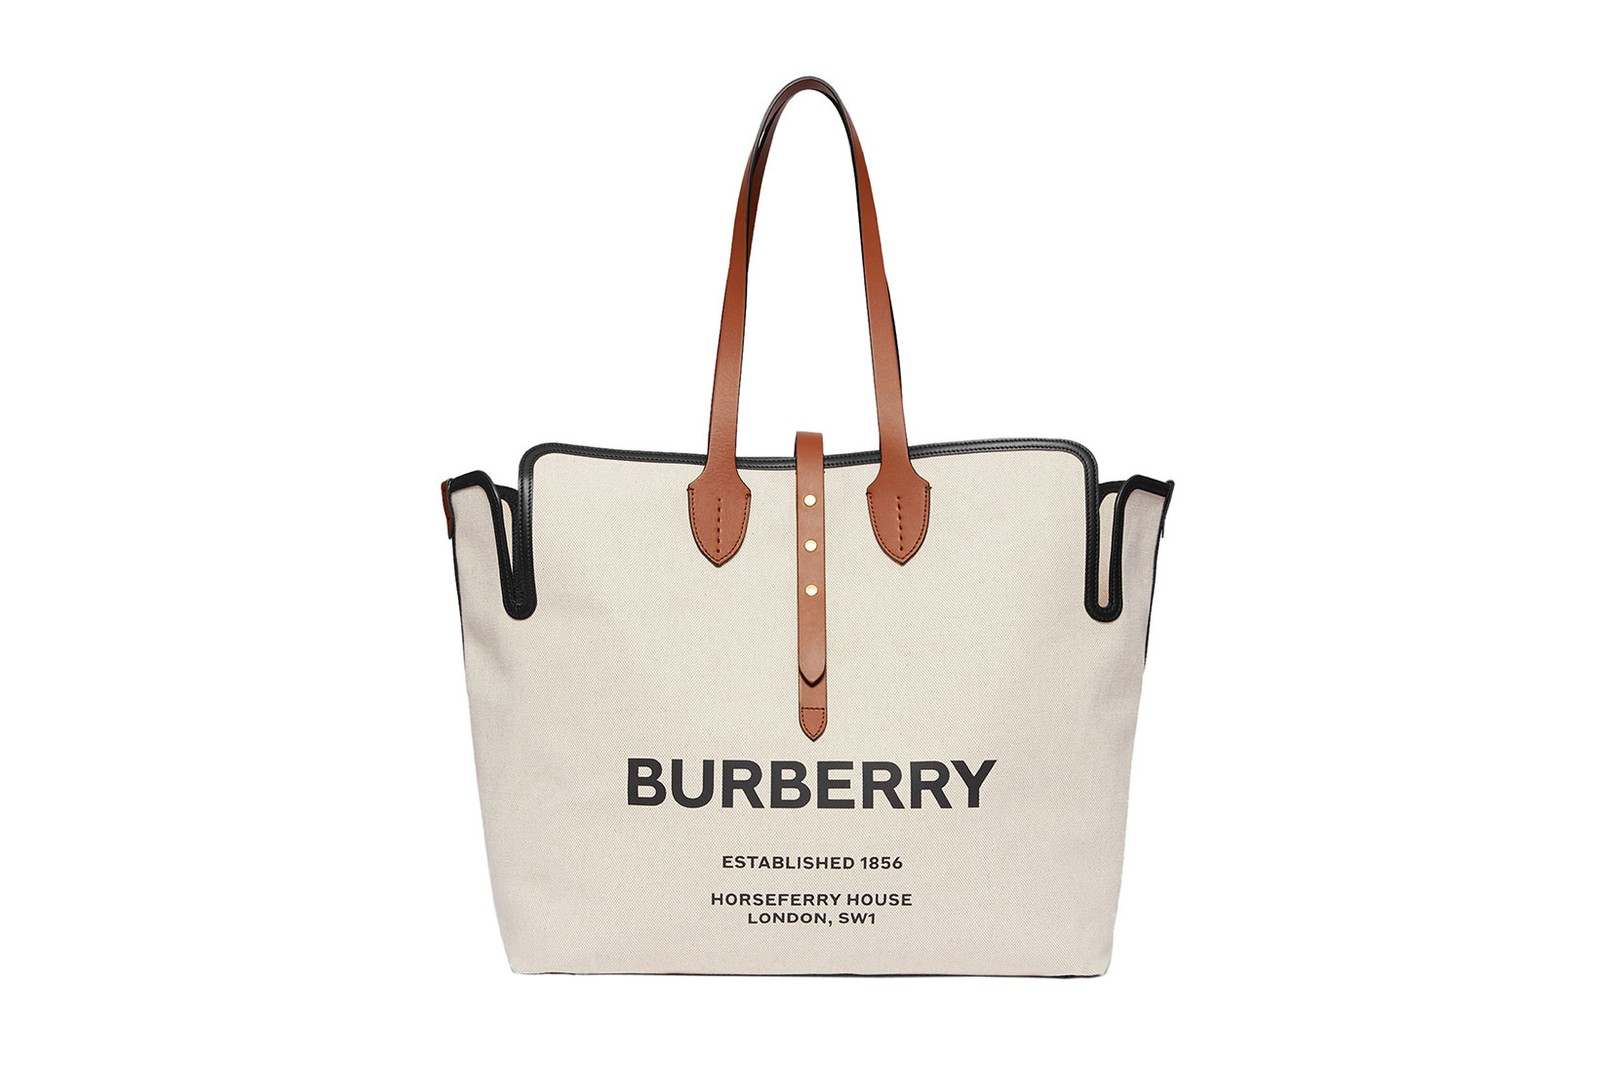 burberry canvas bags pocket peggy bucket anne crossbody spring summer designer purses riccardo tisci